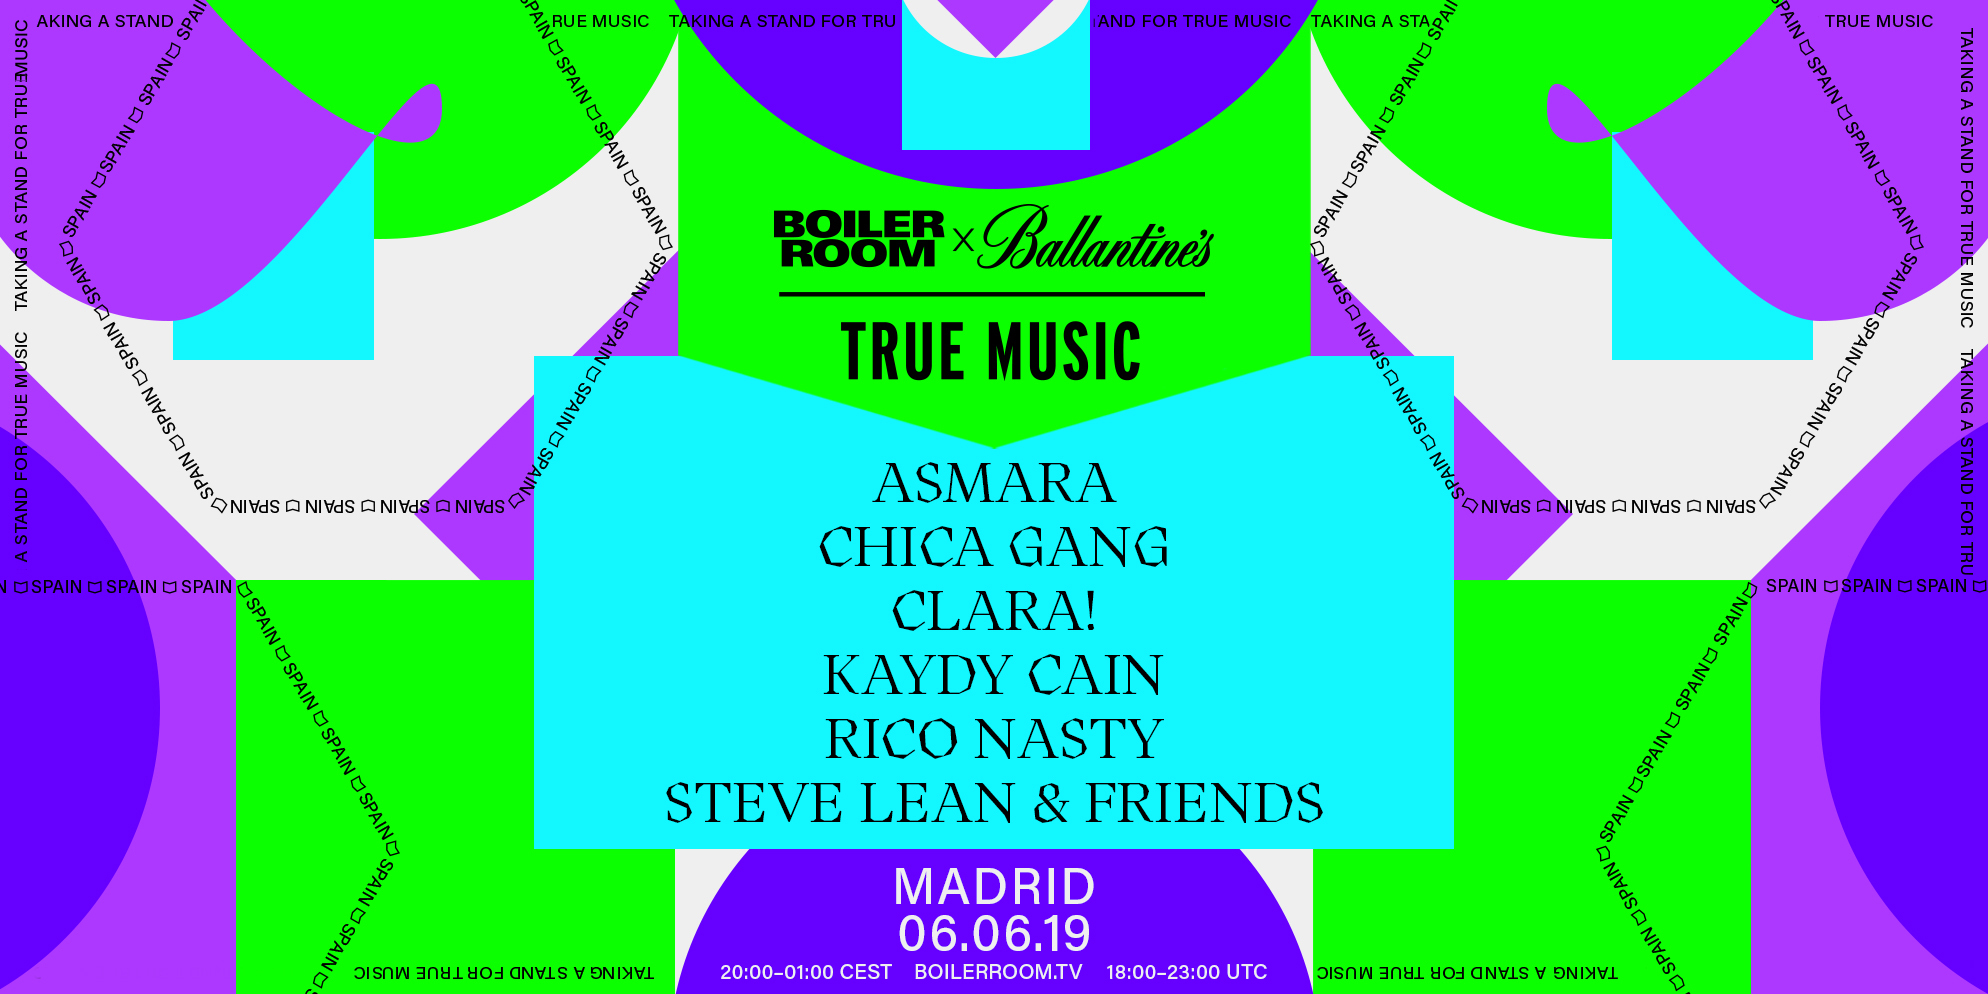 BOILER ROOM X BALLANTINE'S TRUE MUSIC MADRID